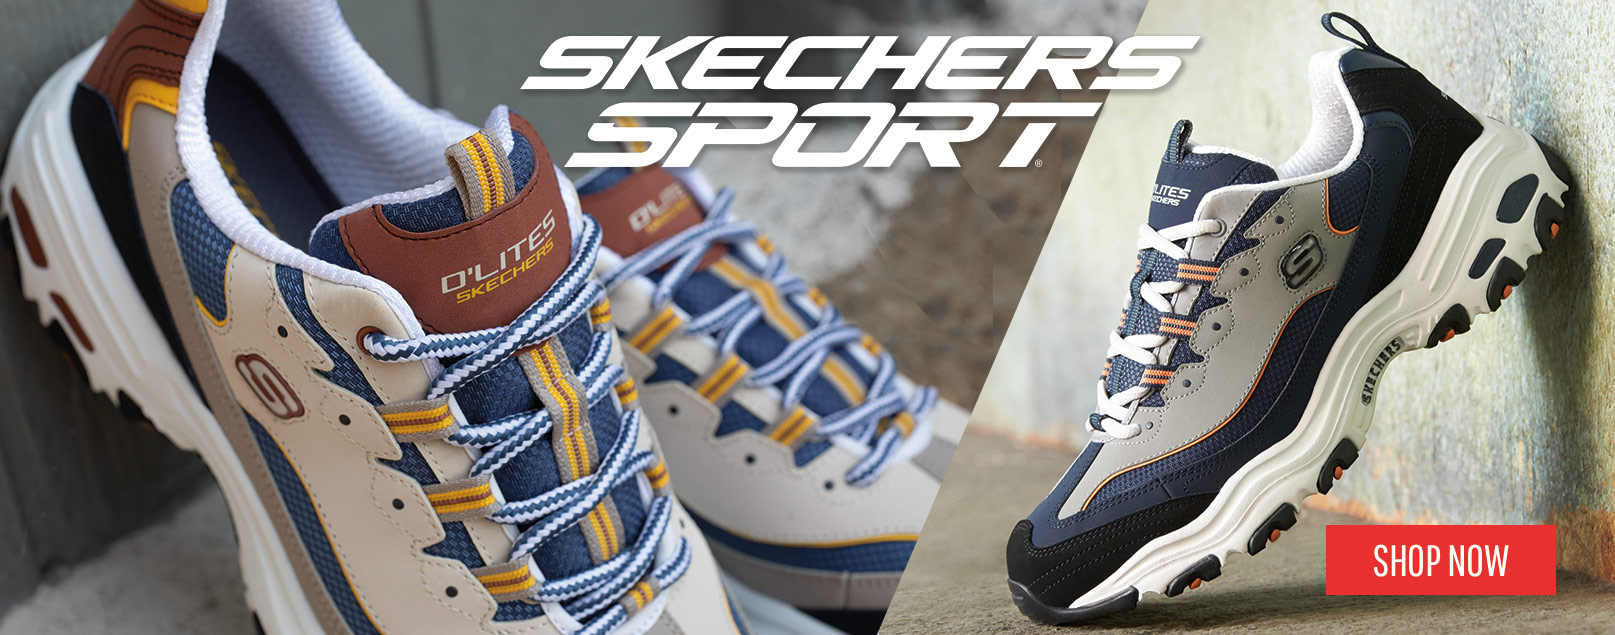 Skechers men's shoes including Sport, Athletic, Performance, Casual and comfort